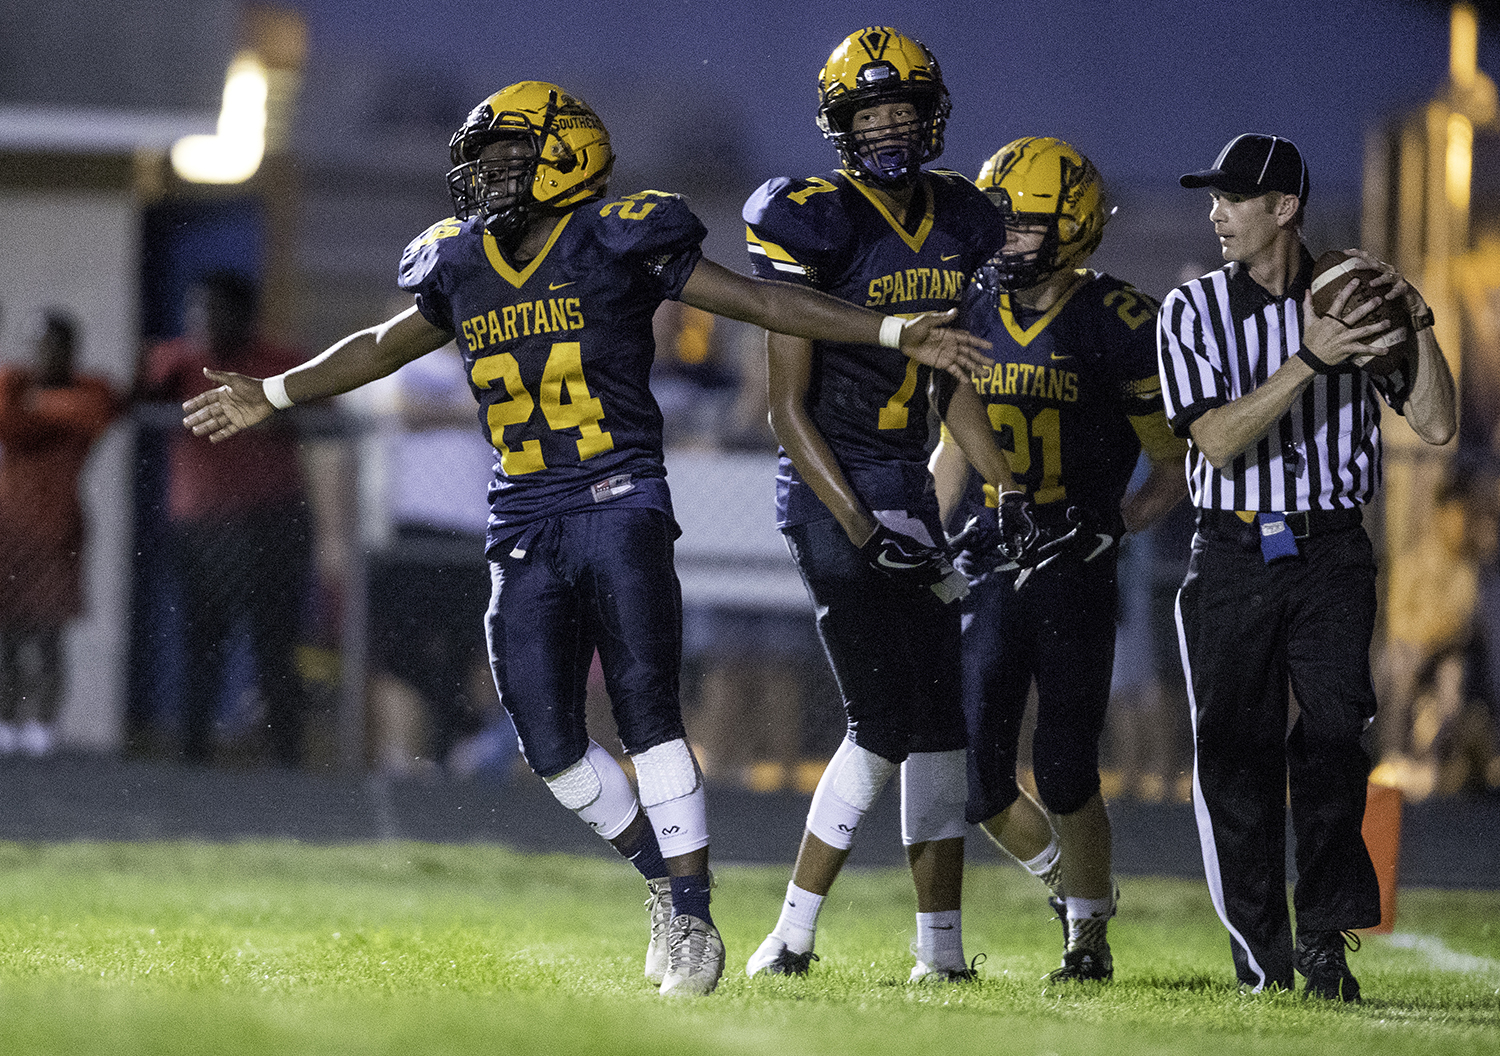 Southeast's Brian Kirkham celebrates a touchdown against Sacred Heart-Griffin at Southeast High School Friday, Sept. 14, 2018. [Ted Schurter/The State Journal-Register]